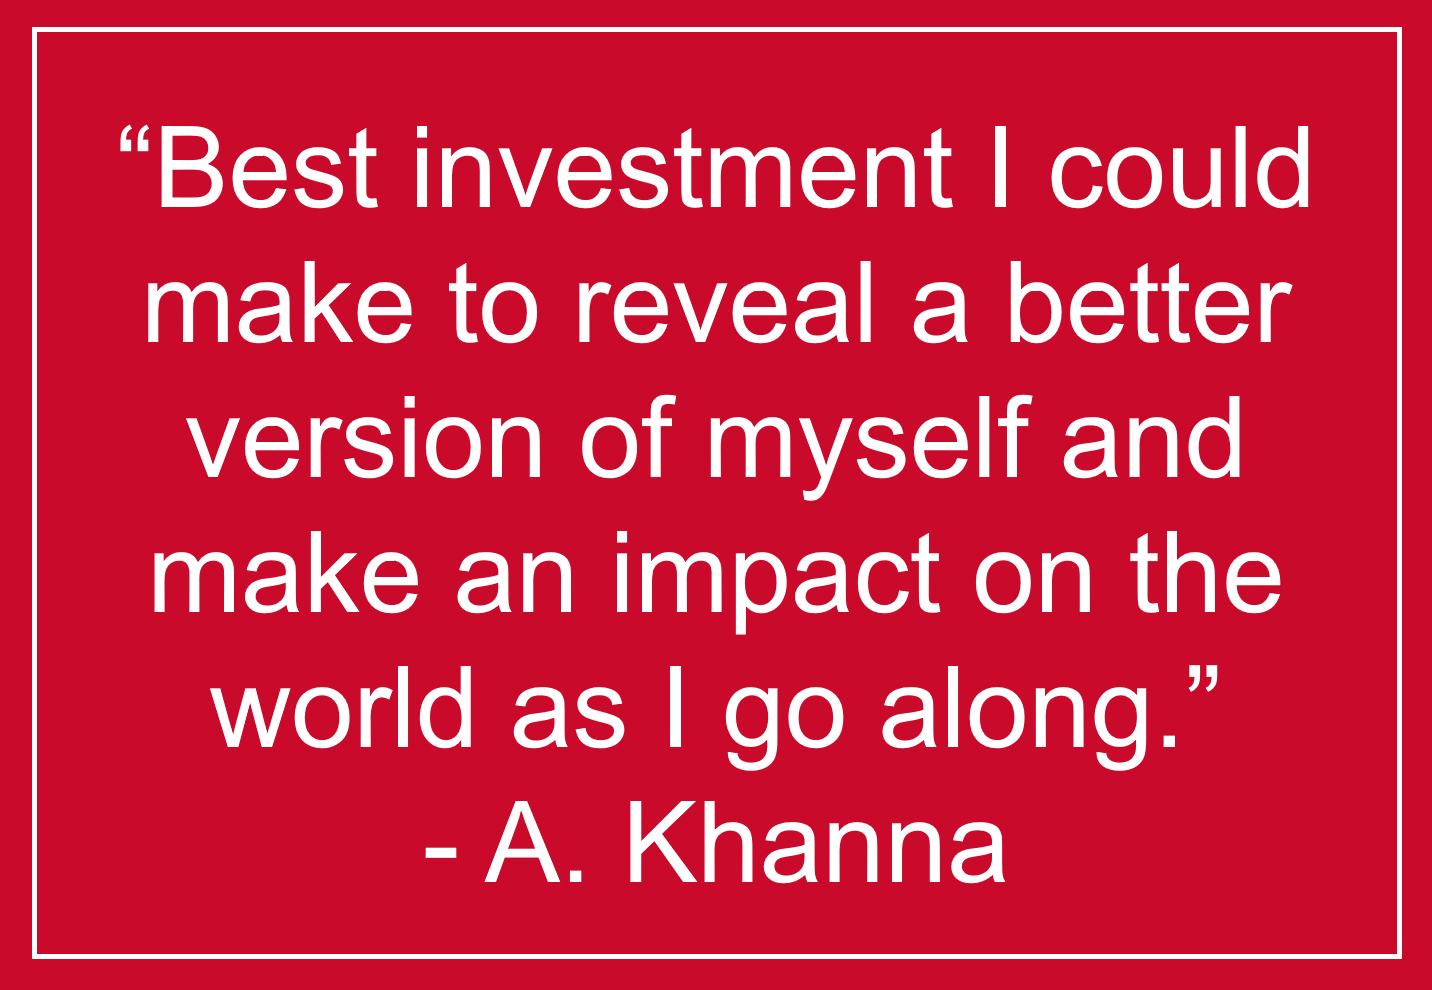 A.Khanna red.png